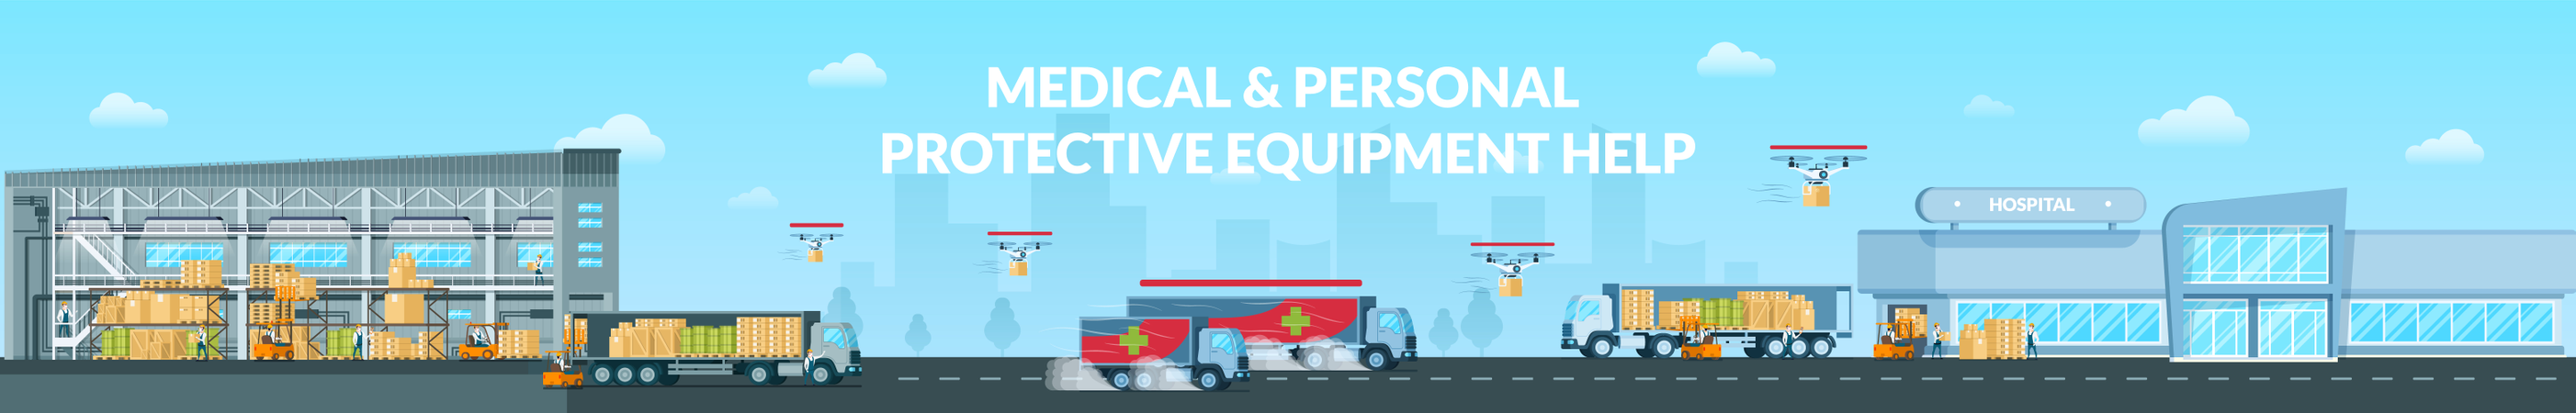 Medical and Personal Protective Equipment Help Illustration